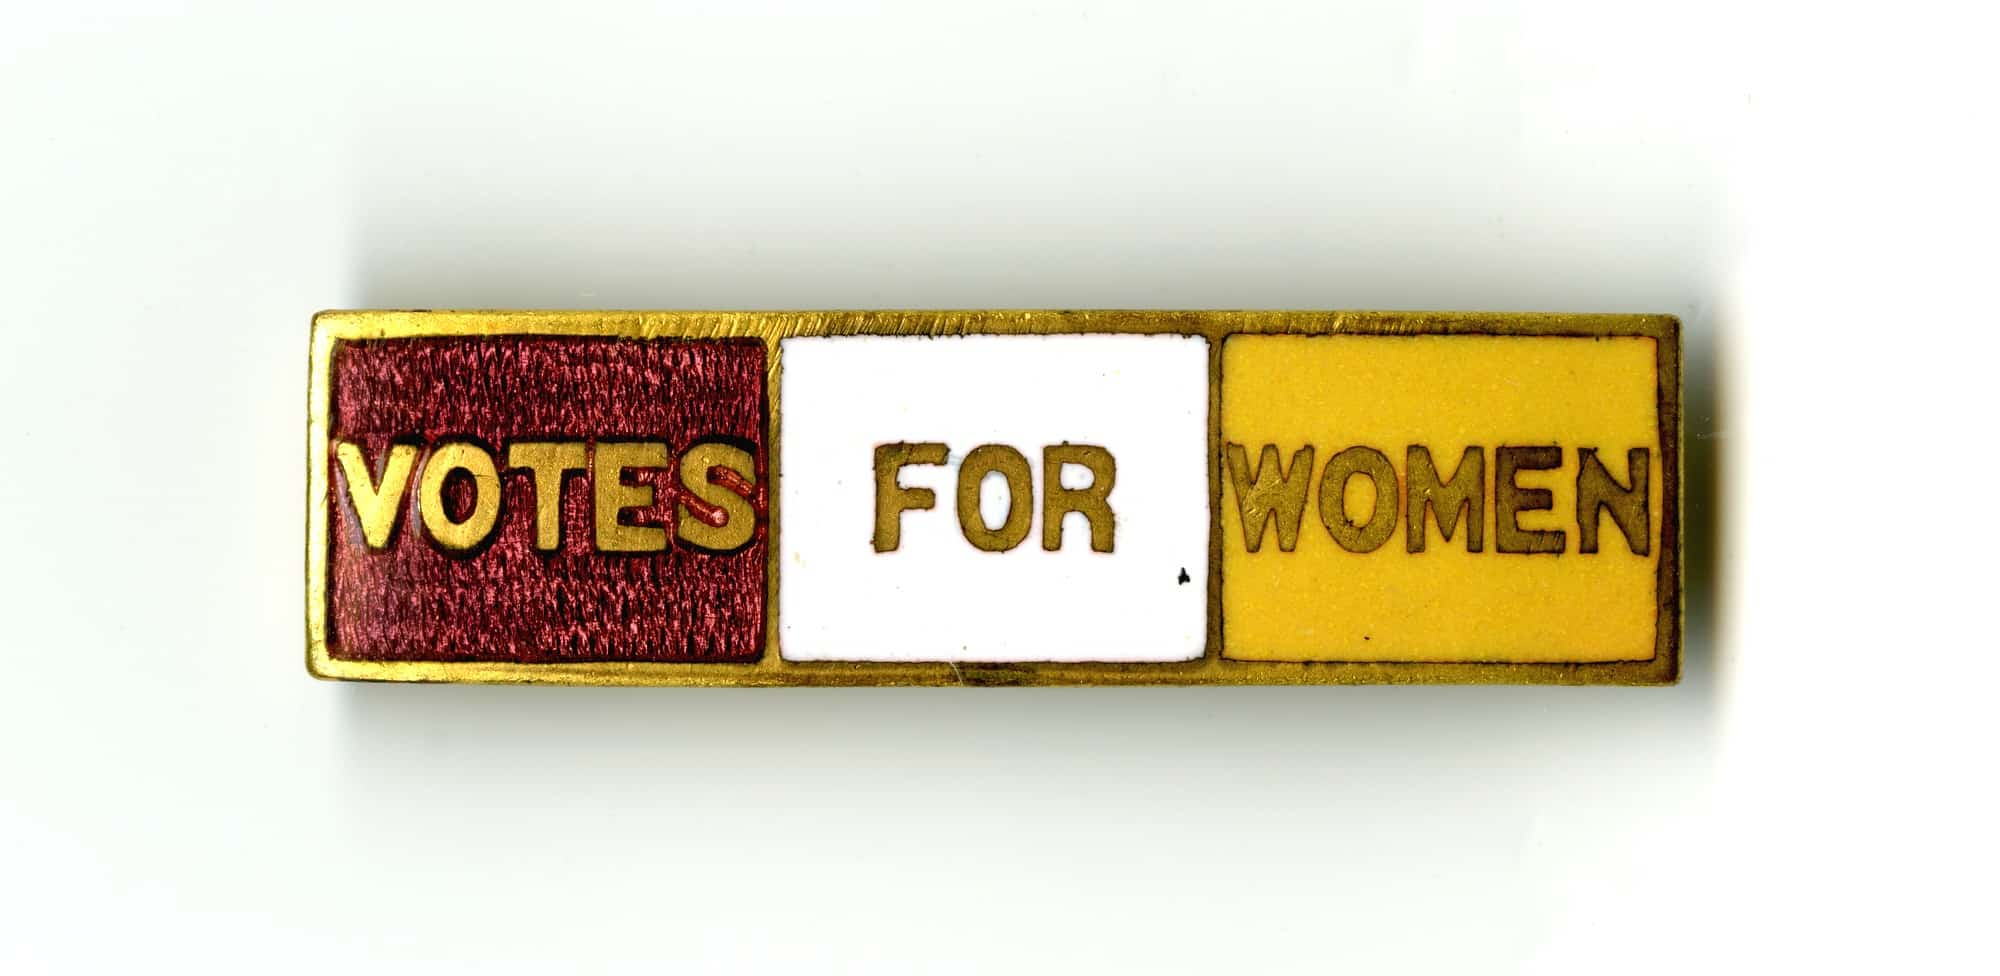 Votes for Women Pin.jpg